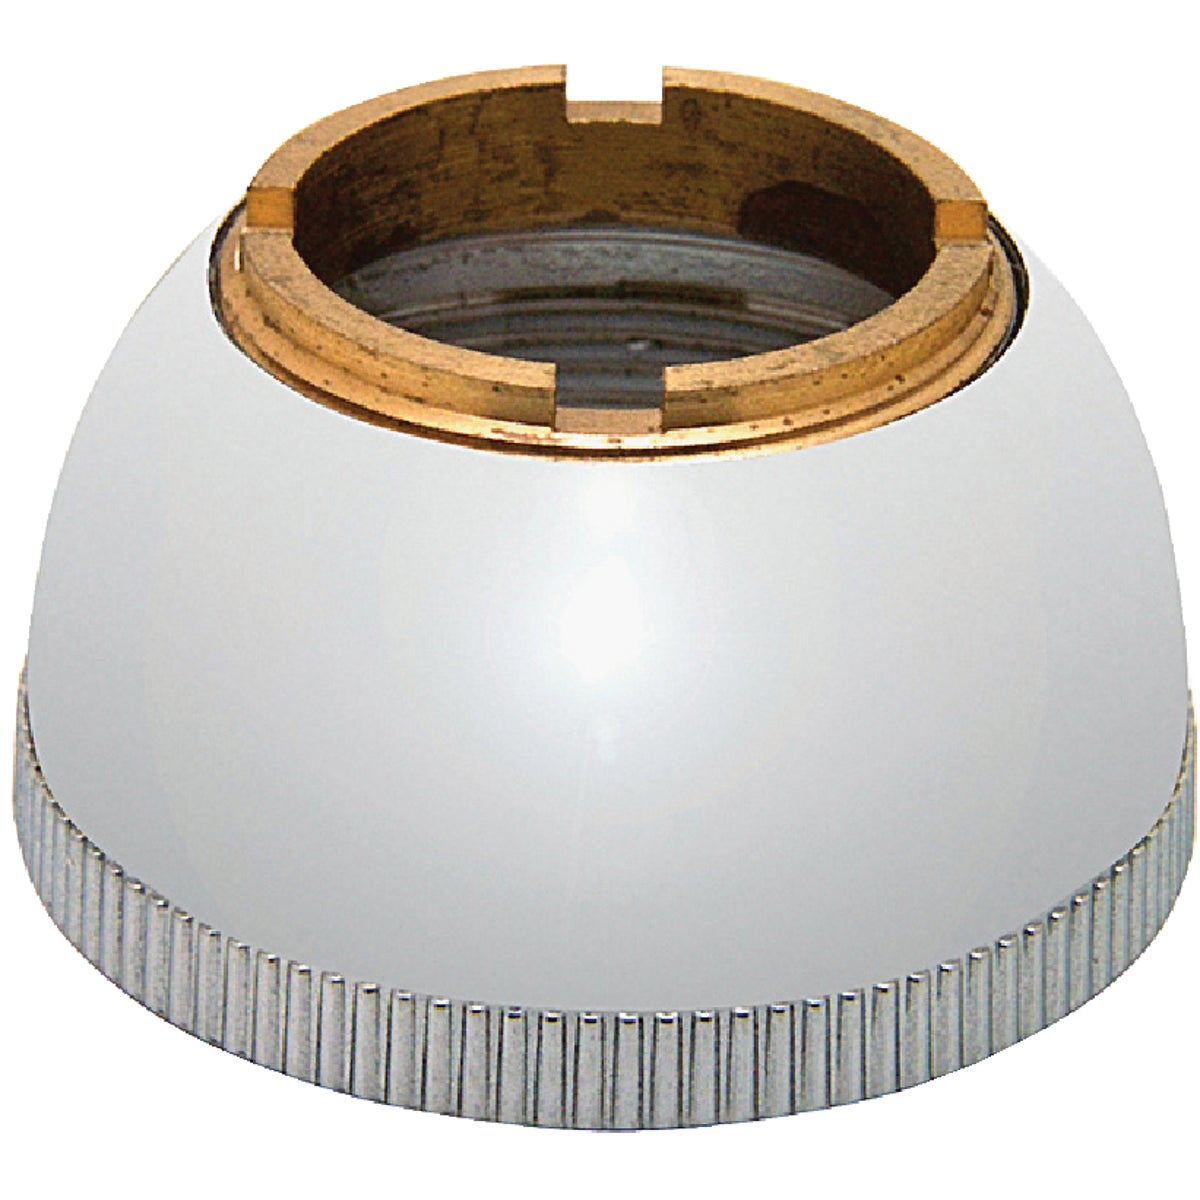 DELTA FAUCET CAP - 88756 by Danco Perfect Match